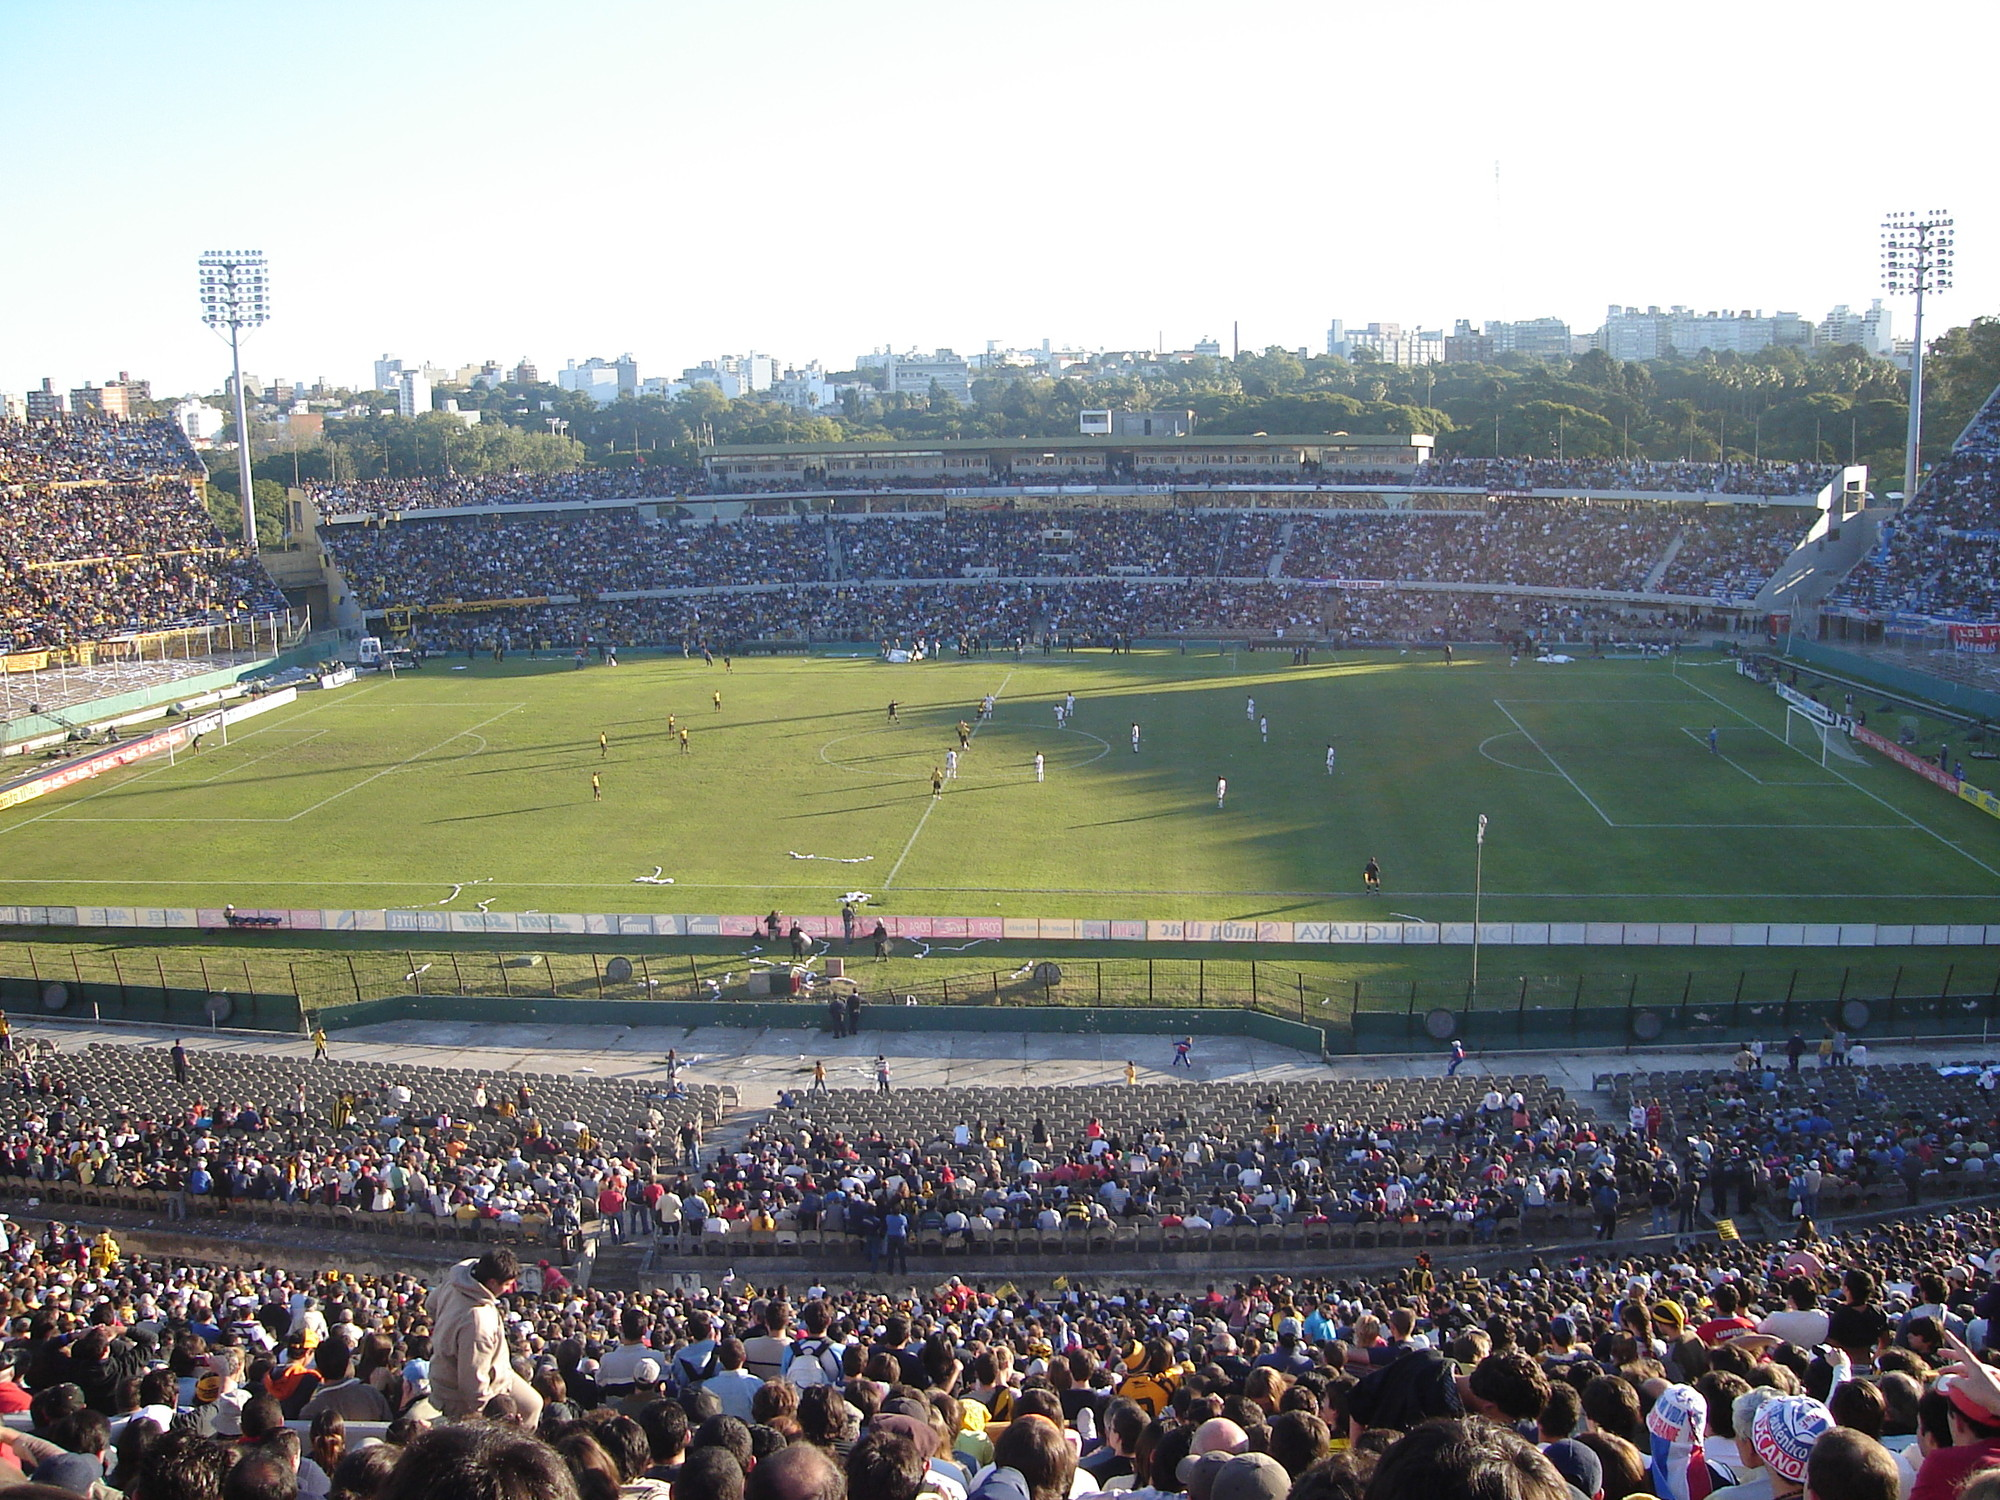 Estadio Centenario. Image © Flodigrip's world